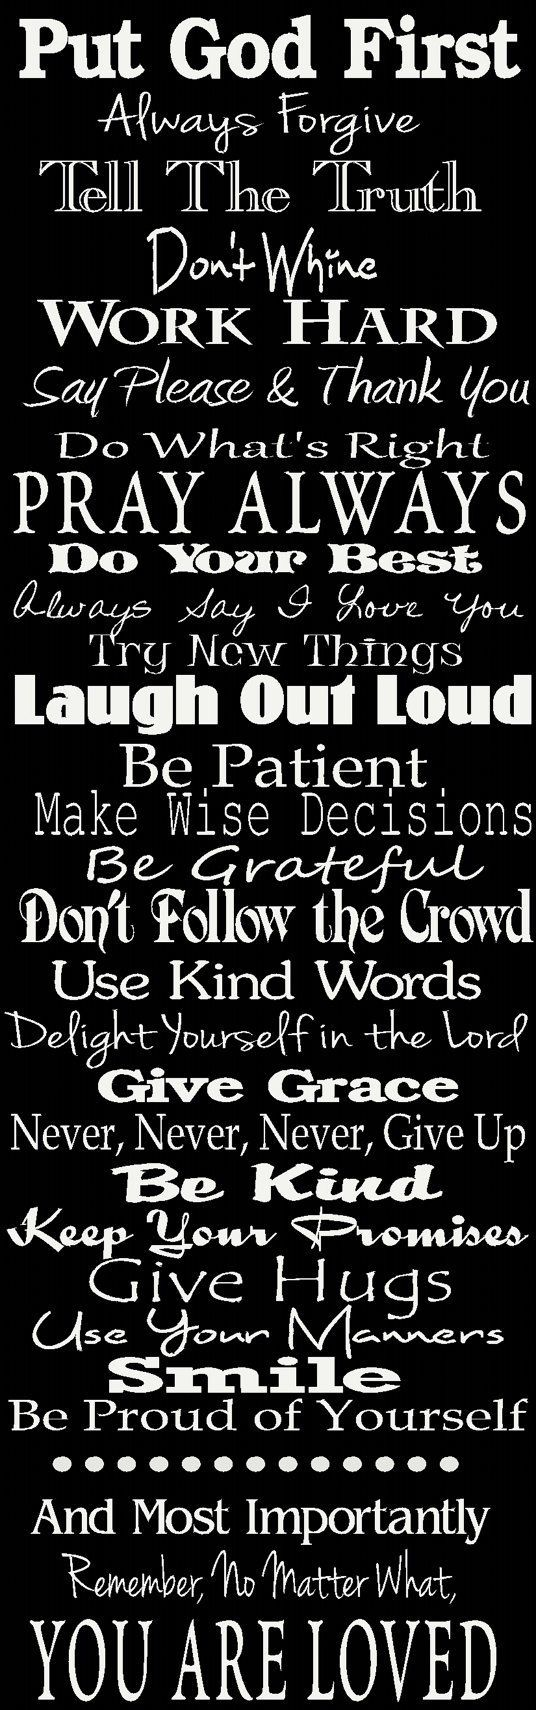 Family/ house Rules sign, Personalized for your family. I like but most importantly God comes first.